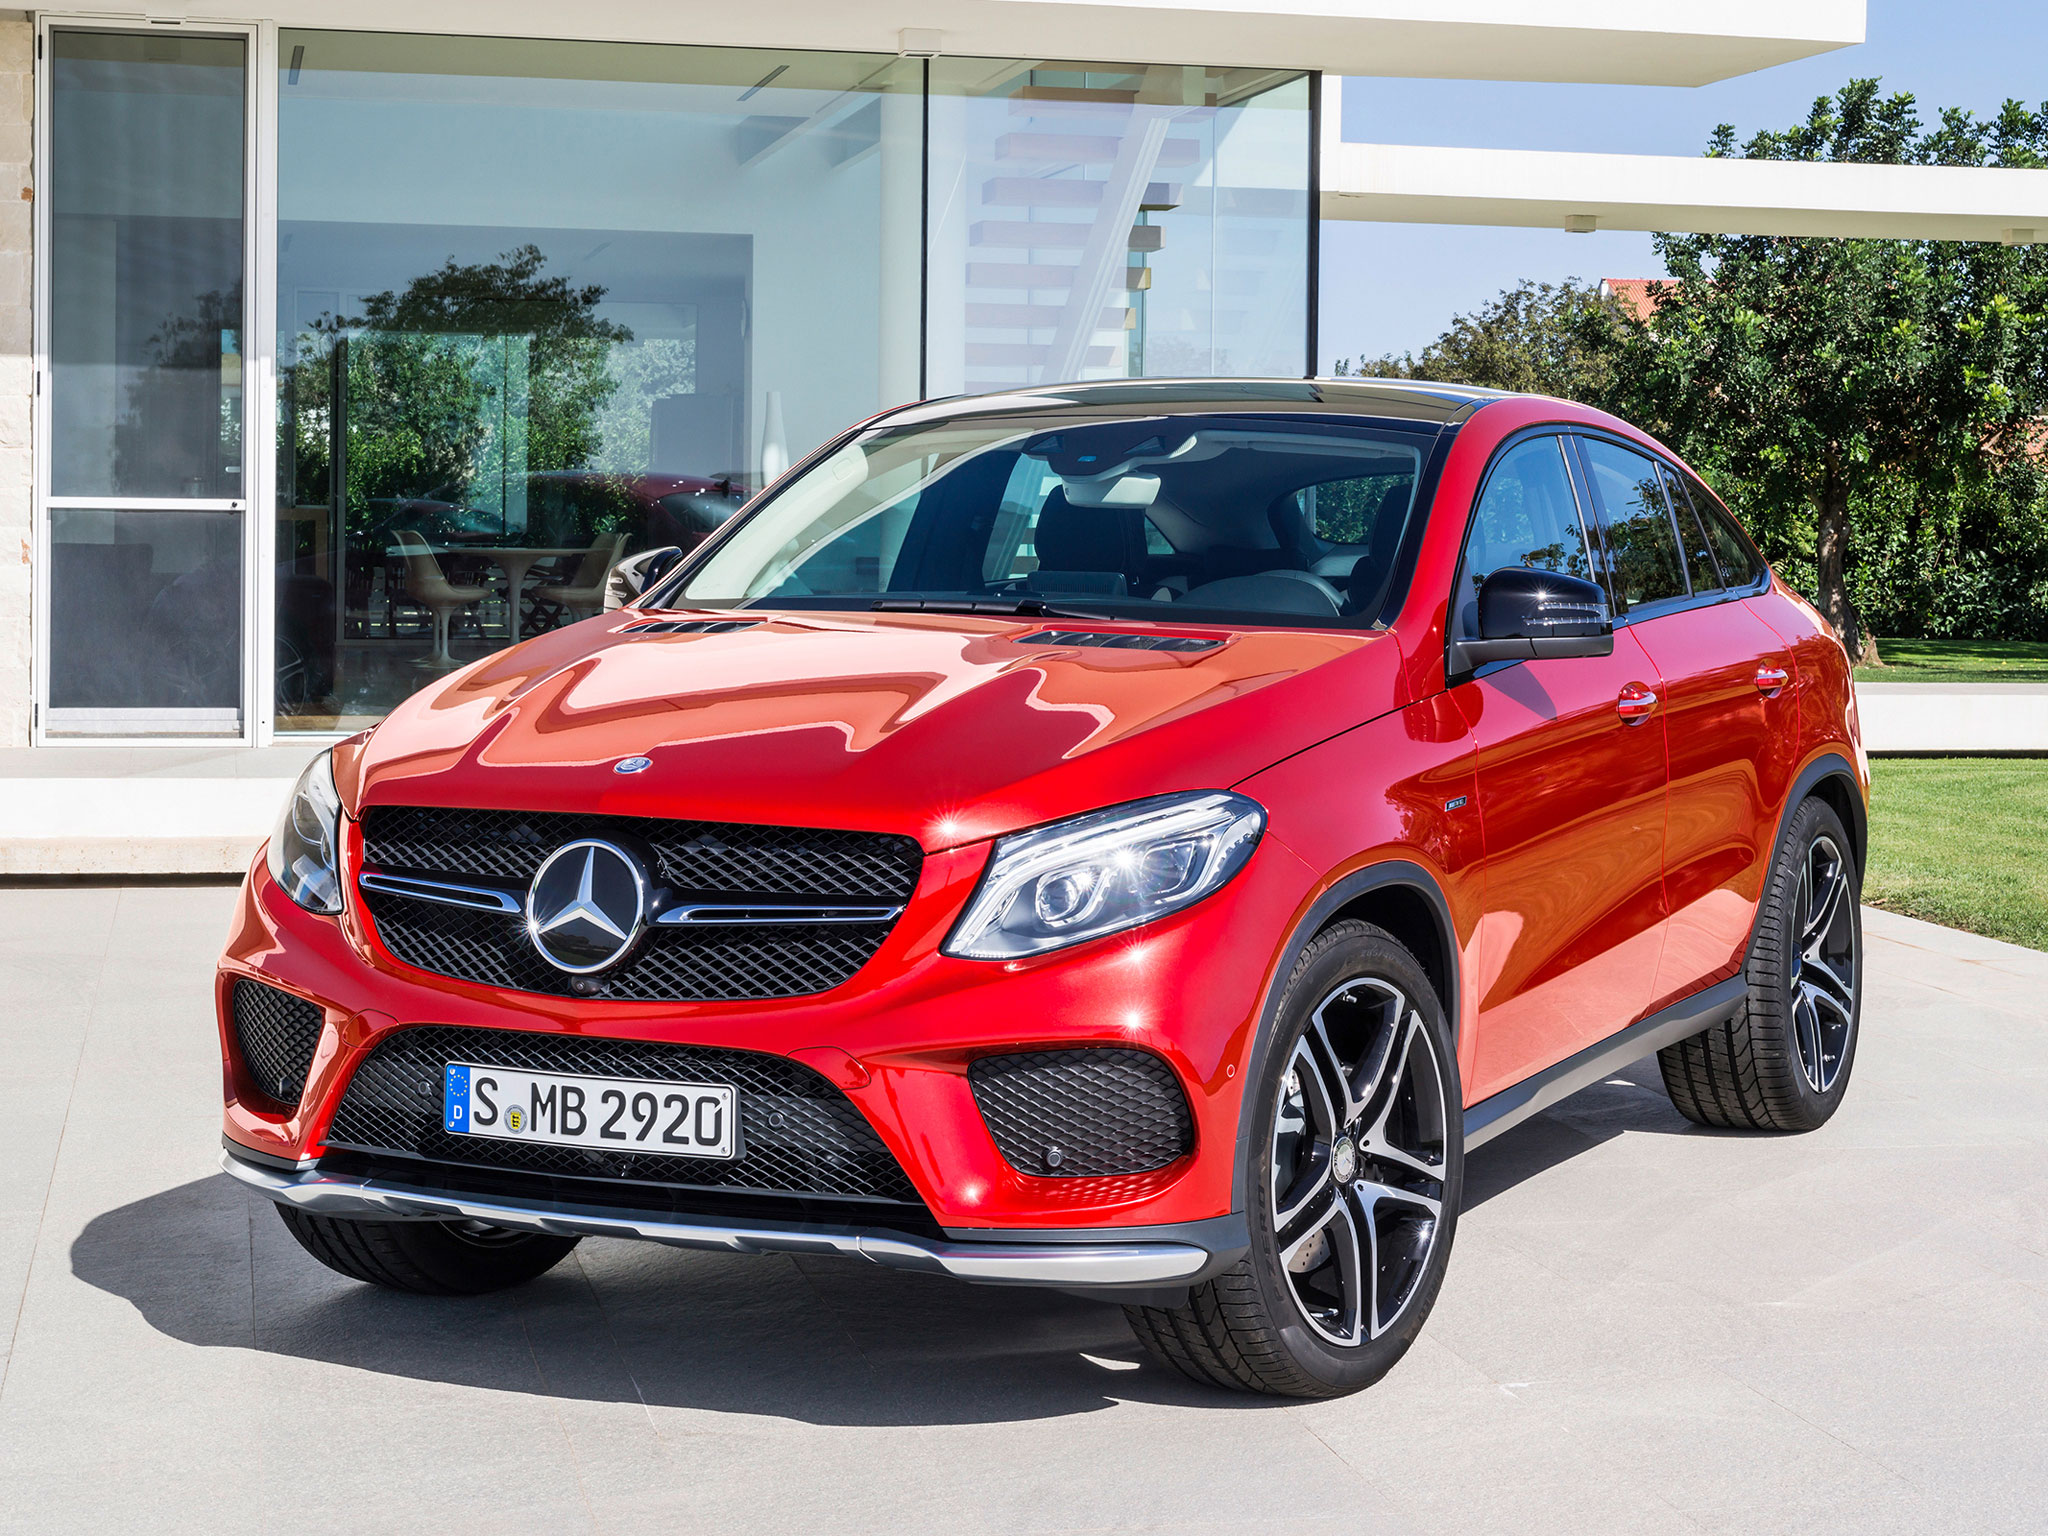 https://assets.mbusa.com/vcm/MB/DigitalAssets/FutureModels/Responsive/2016_GLE_Coupe/Gallery/2016-GLE-CLASS-COUPE-FUTURE-GALLERY-007-WR-T.jpg